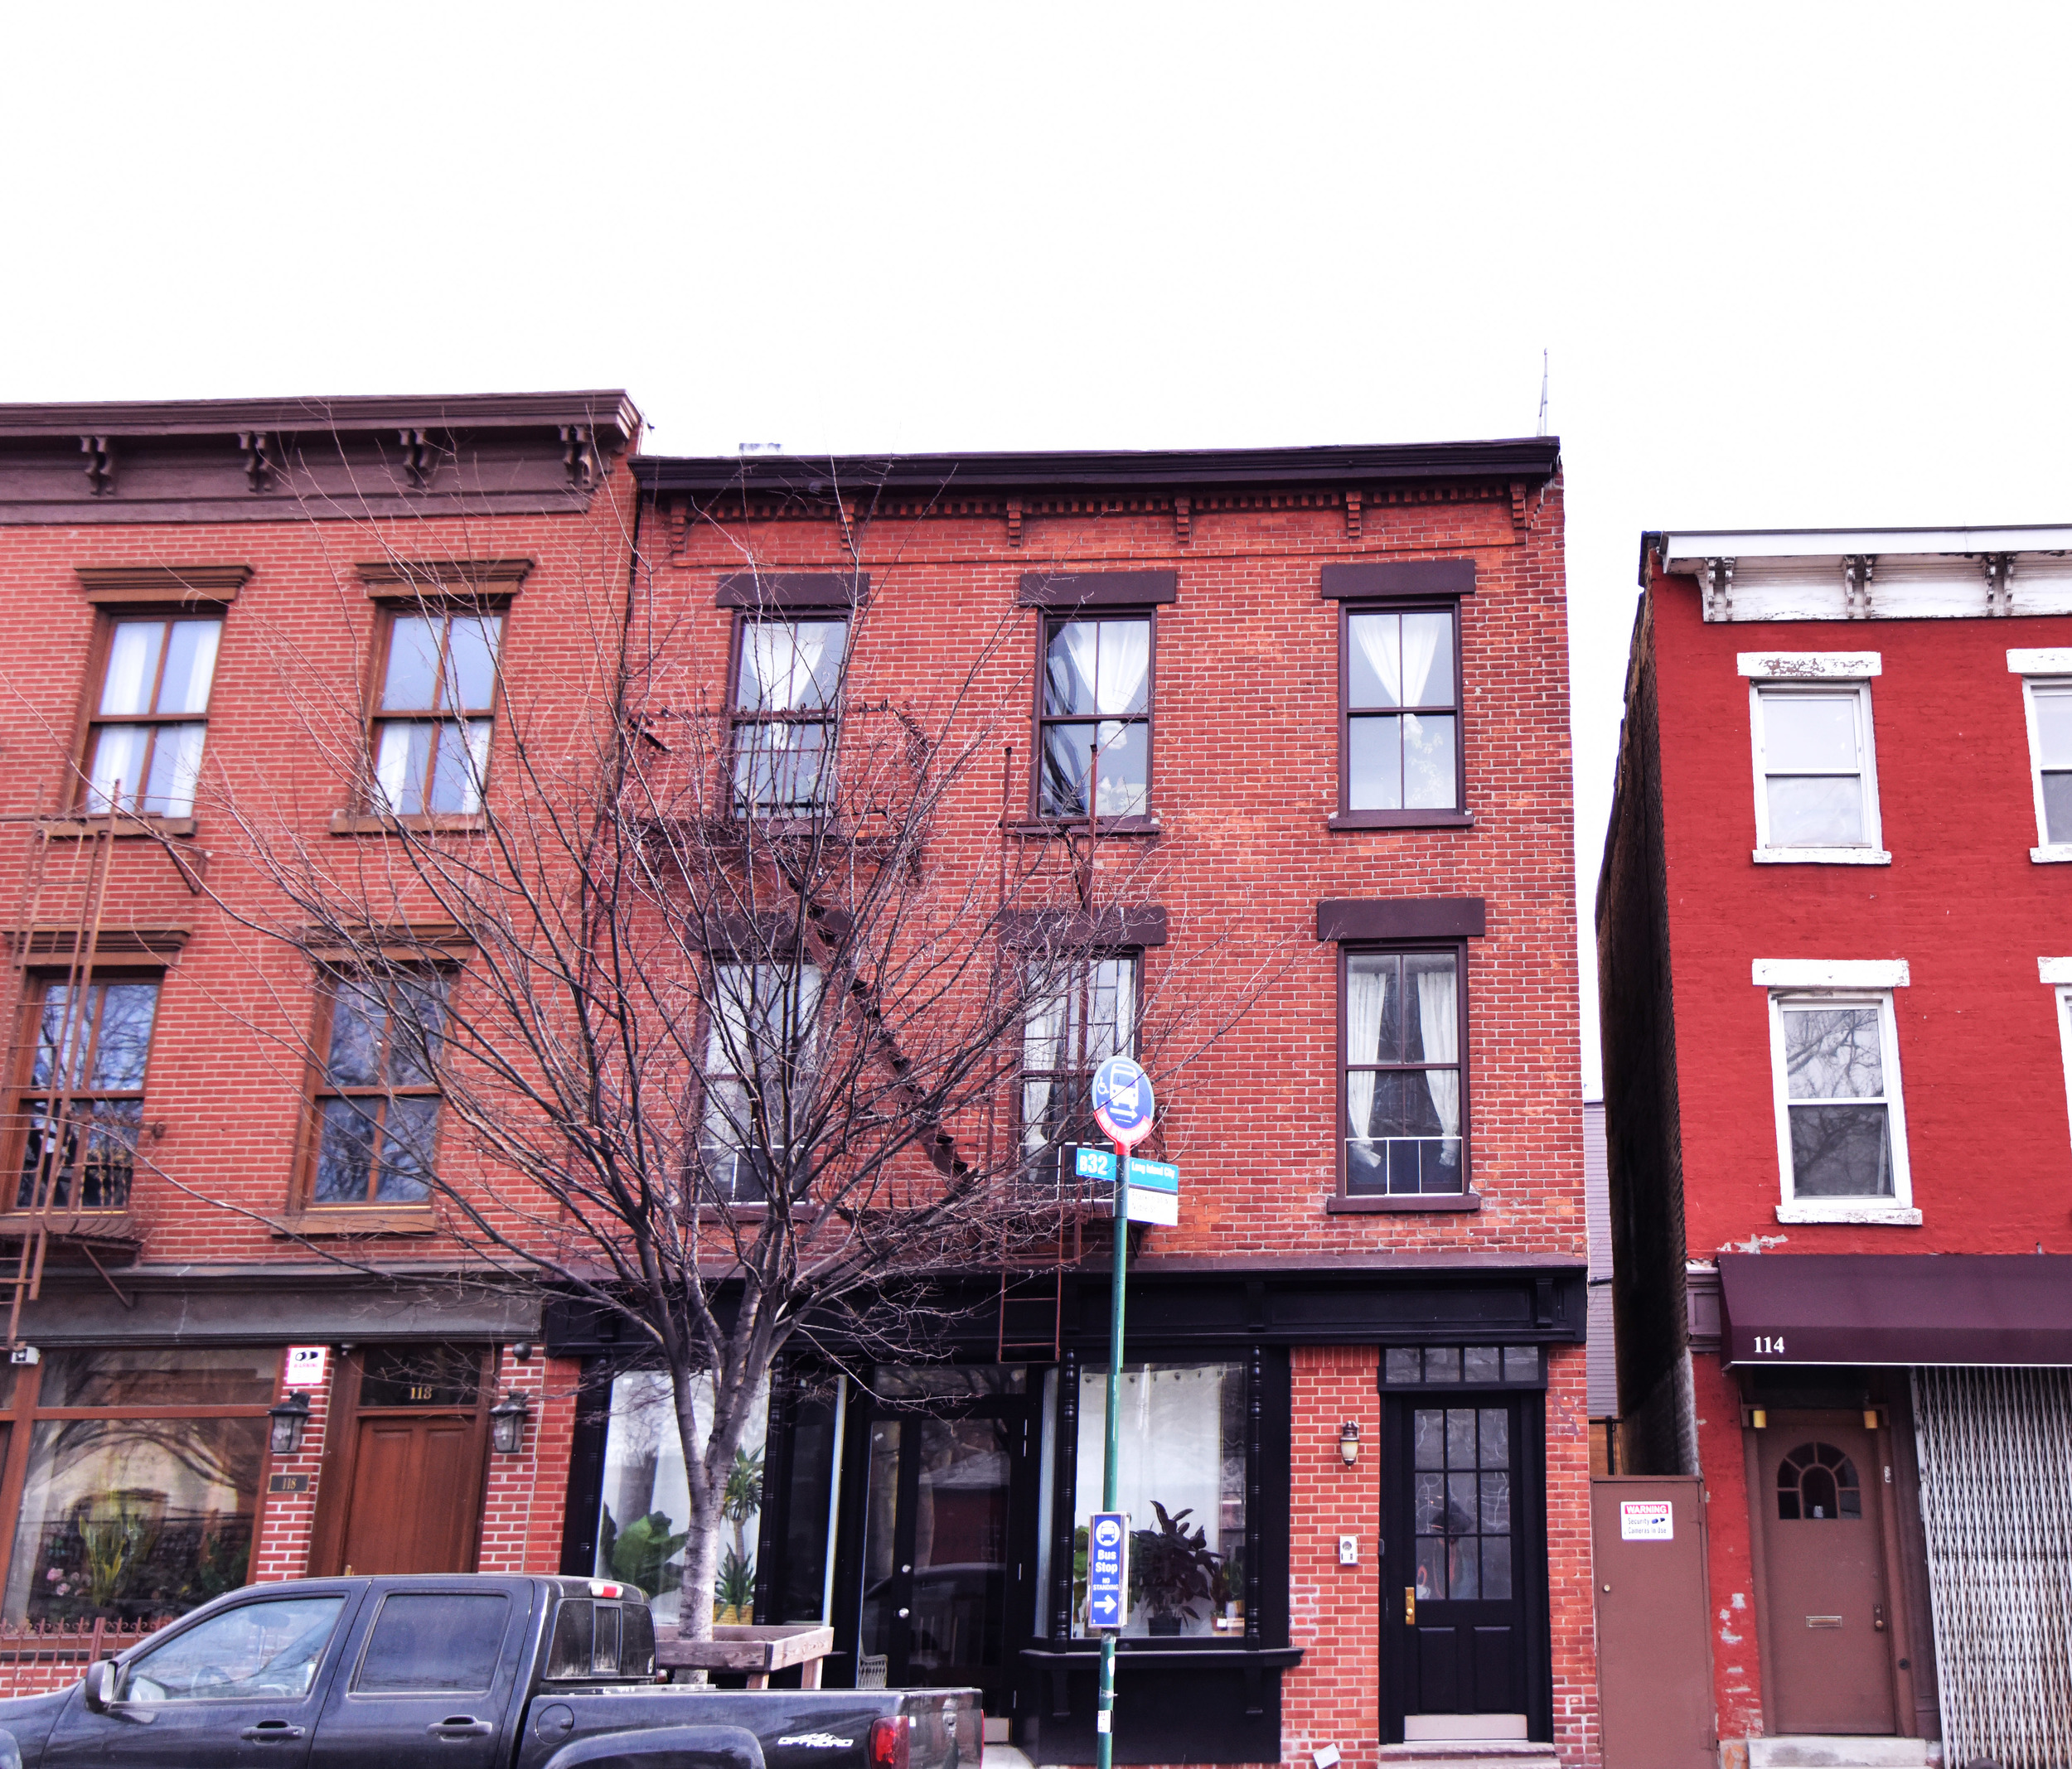 Sold | Greenpoint | 3 Fam | 1,300,000